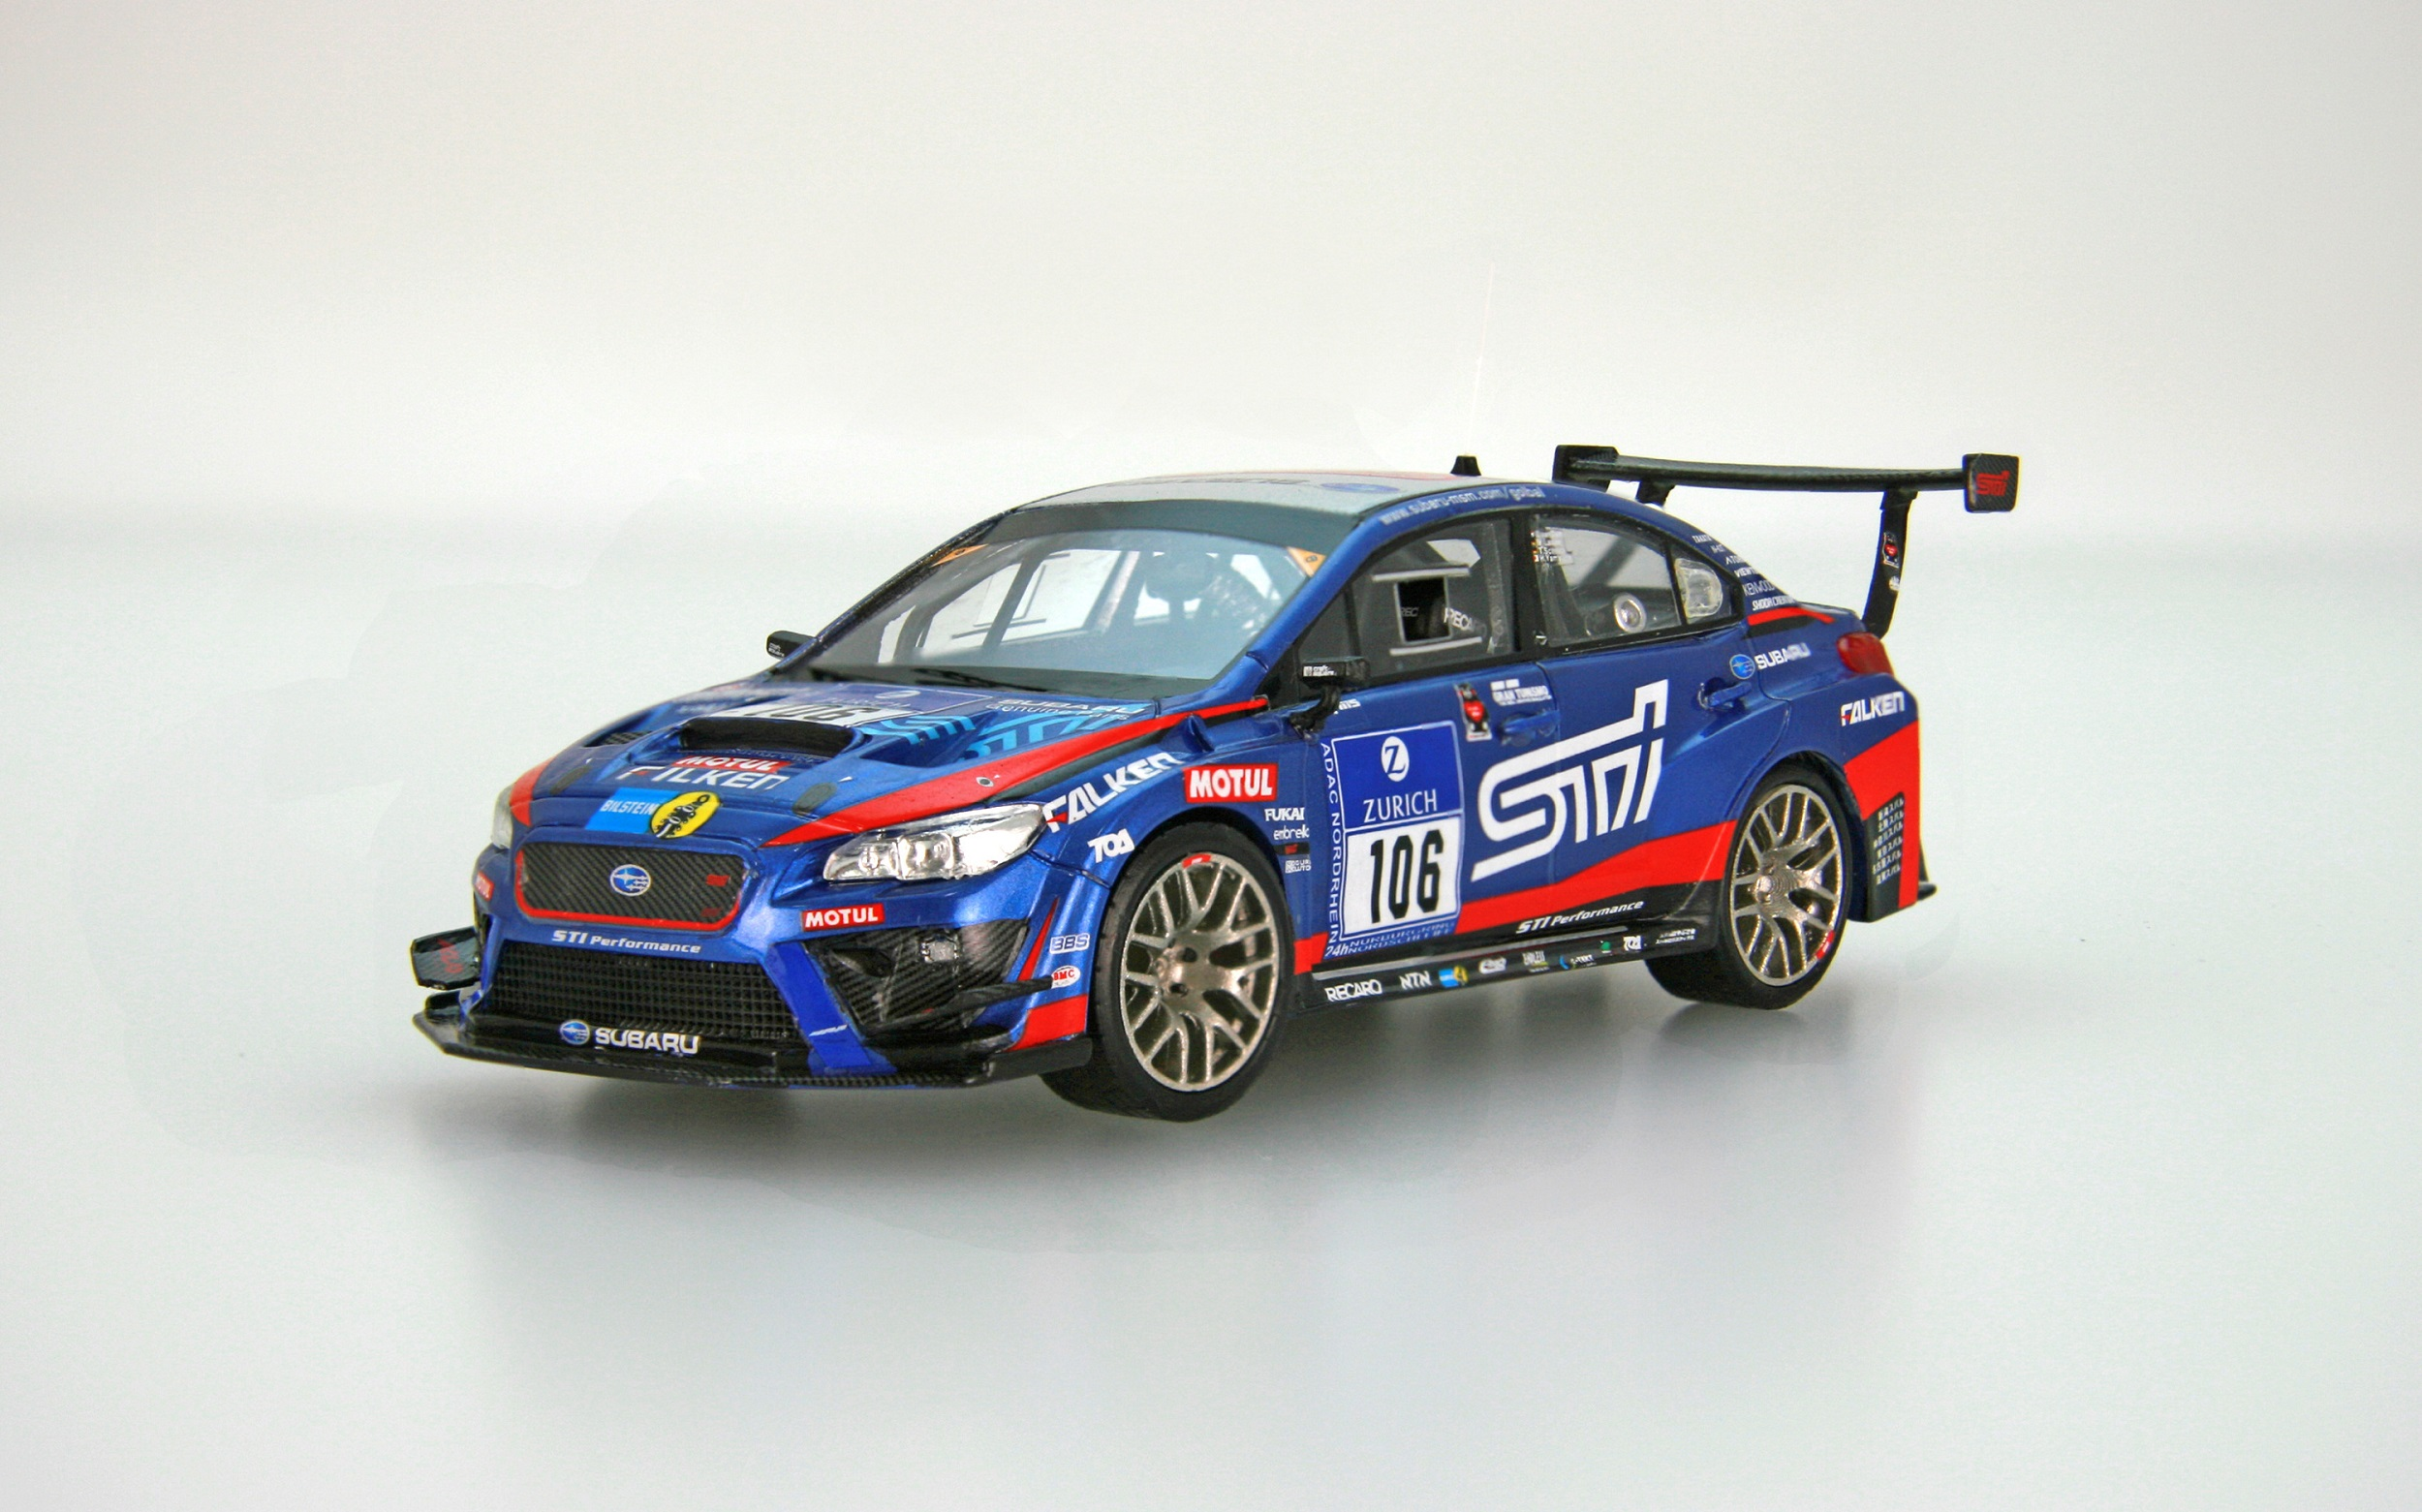 【45451】SUBARU WRX STI Nurburgring 24-hour Race 2016 No.106 [RESIN]